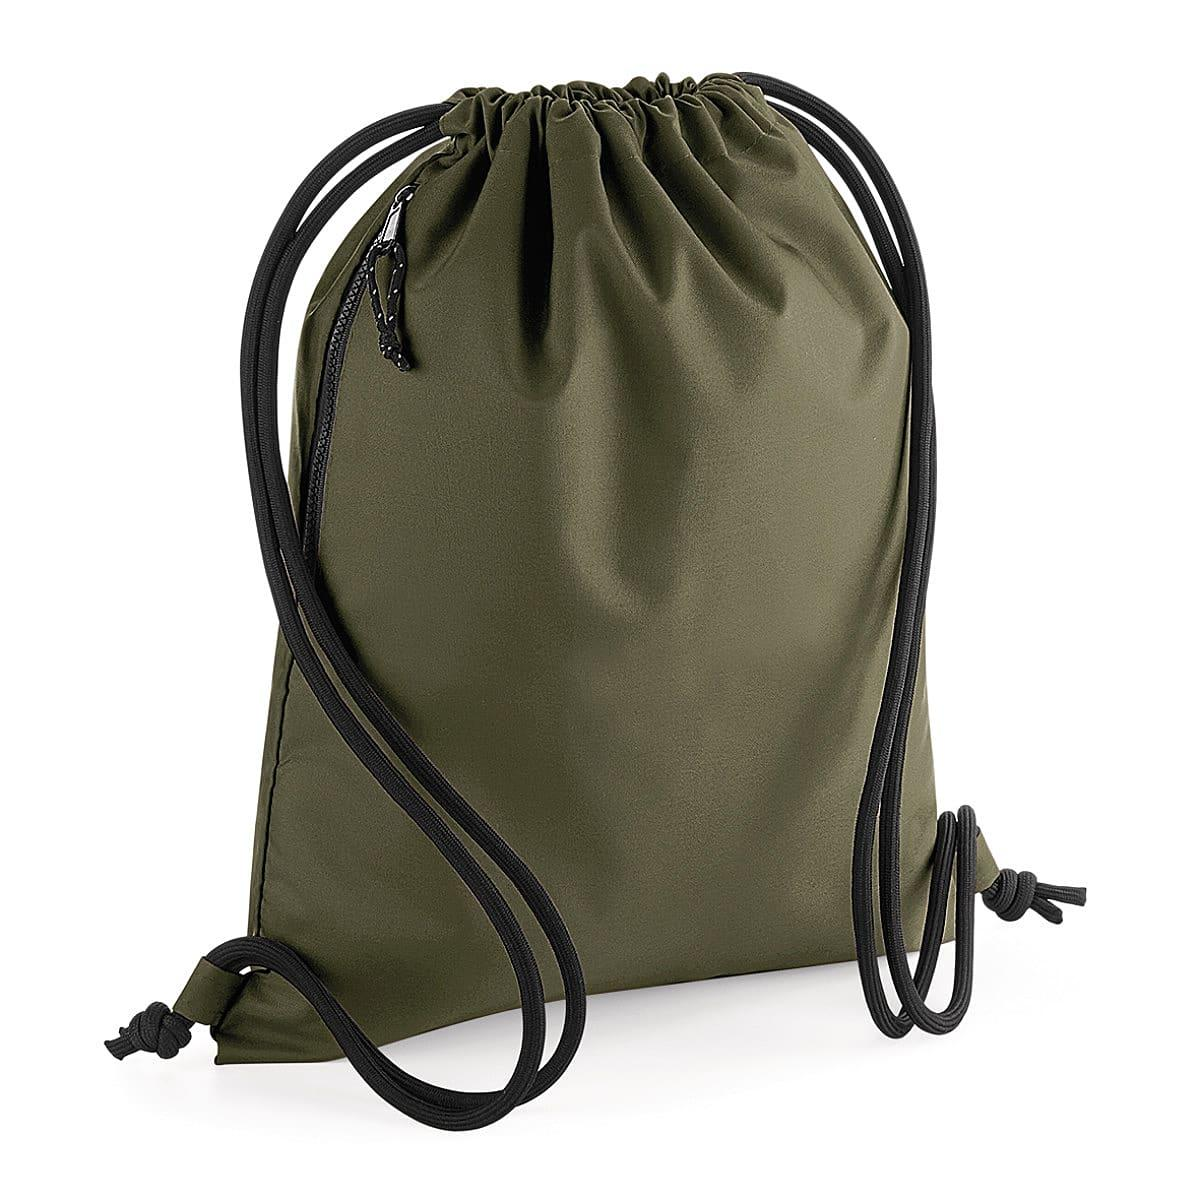 Bagbase Recycled Gymsac in Military Green (Product Code: BG281)